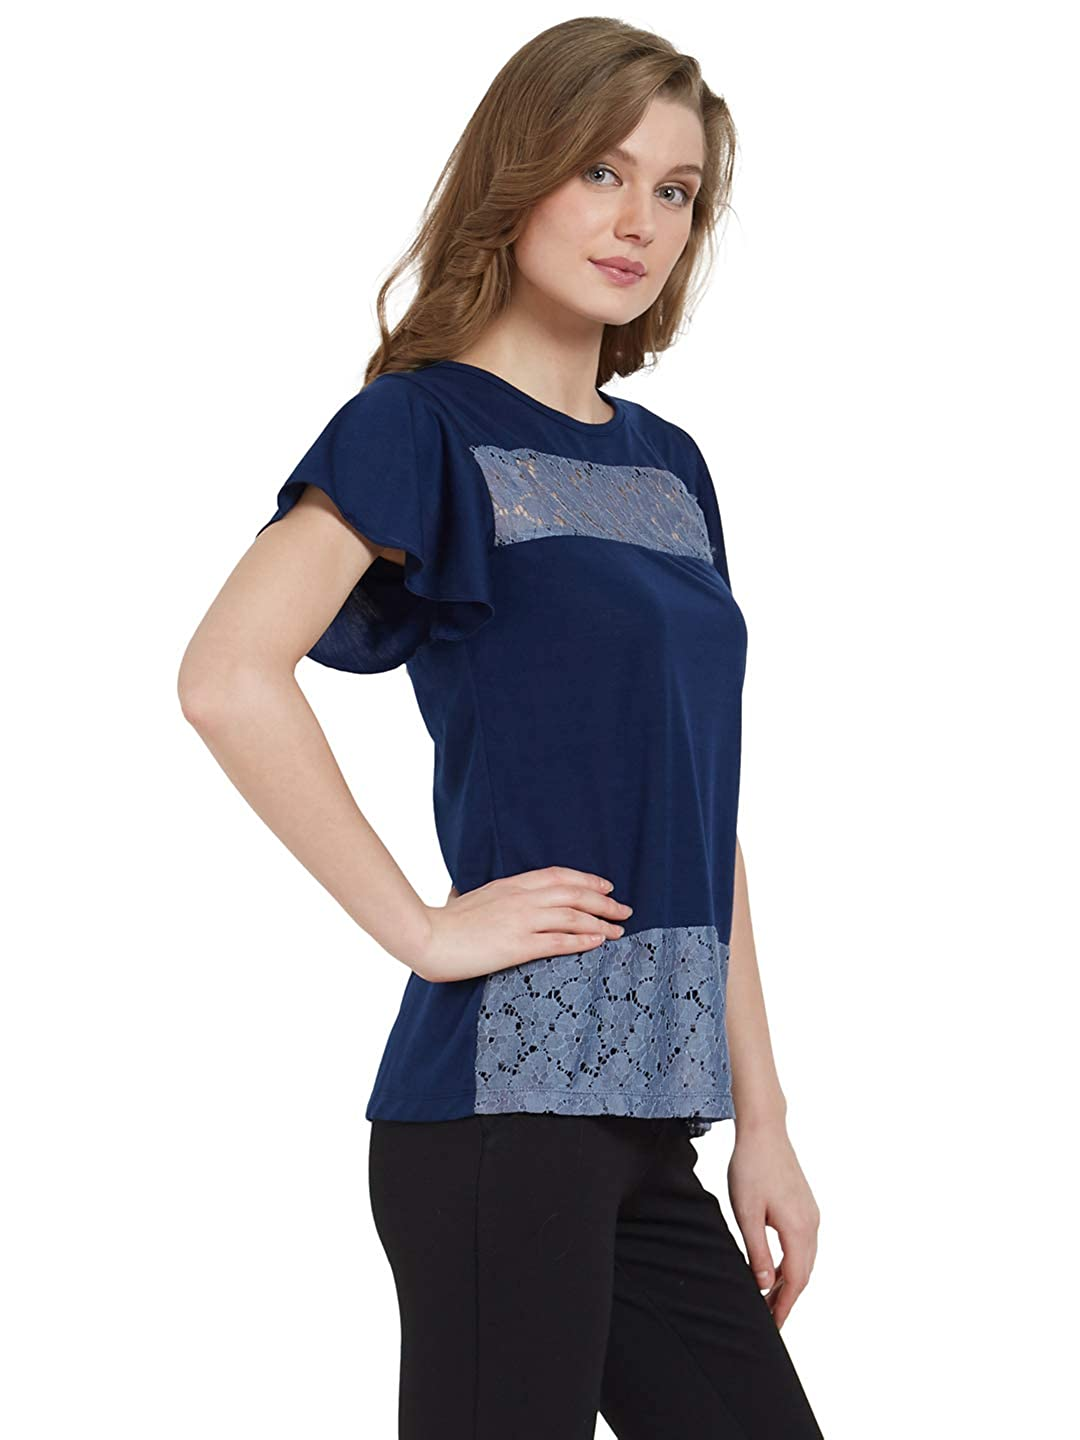 Lace Color Blocked Top Viscose Loungewear Women Ladies Navy Blue A290A